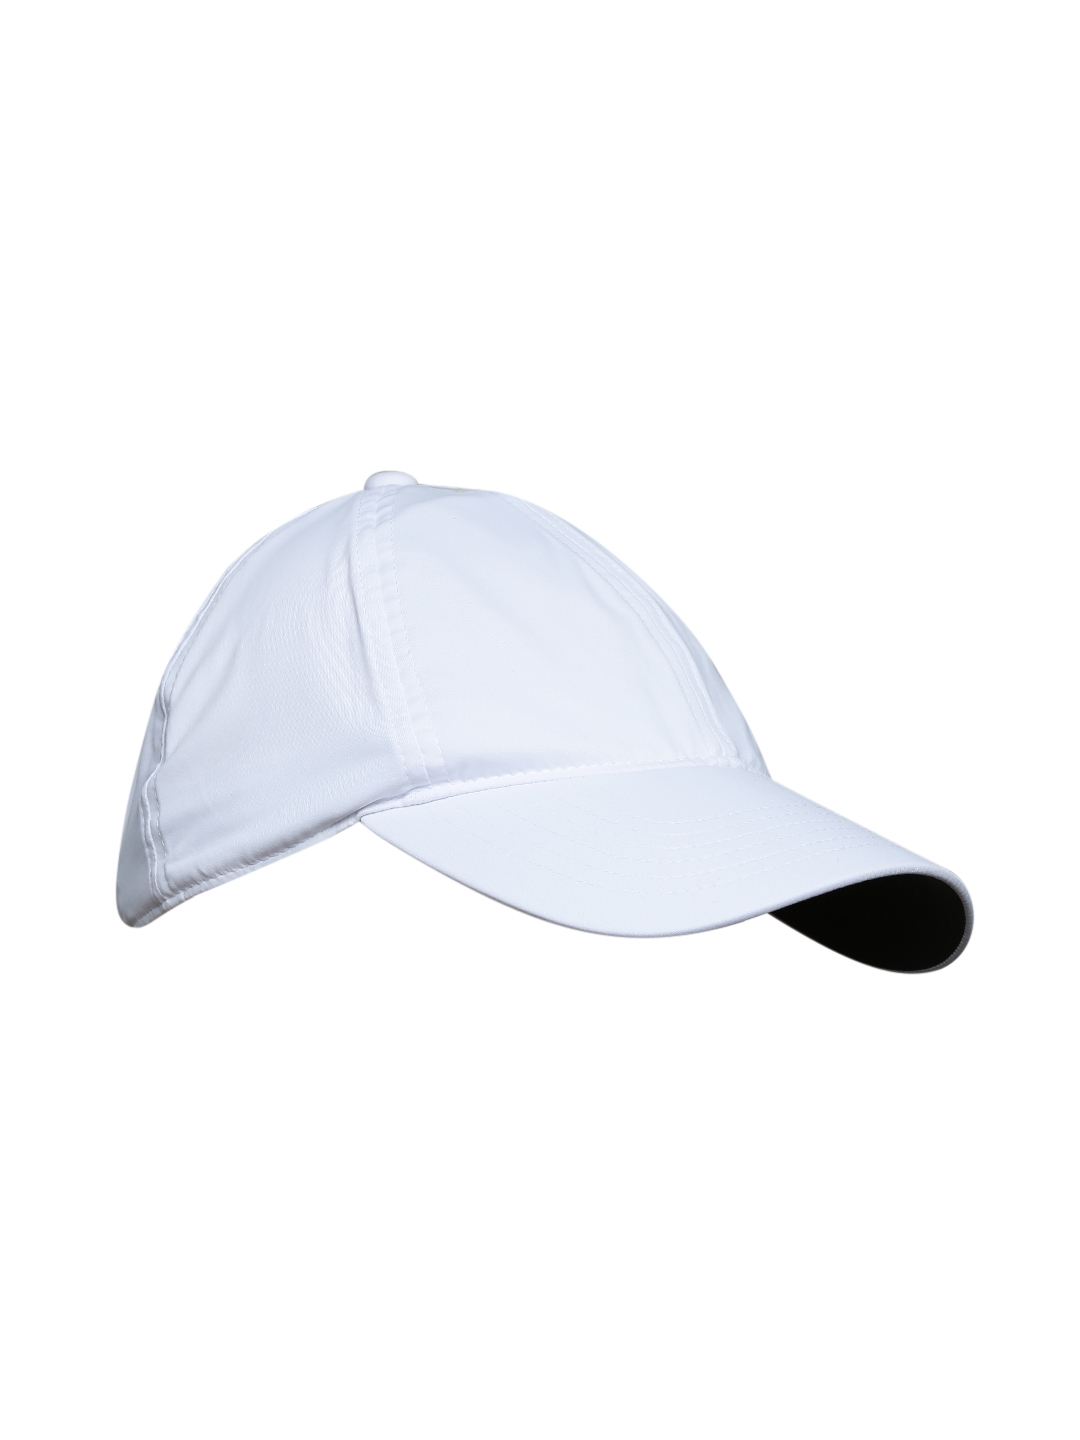 cfd25c1e Buy Columbia Men White Coolhead Outdoor Hiking Casual Ball Cap - Caps for  Men 896571 | Myntra